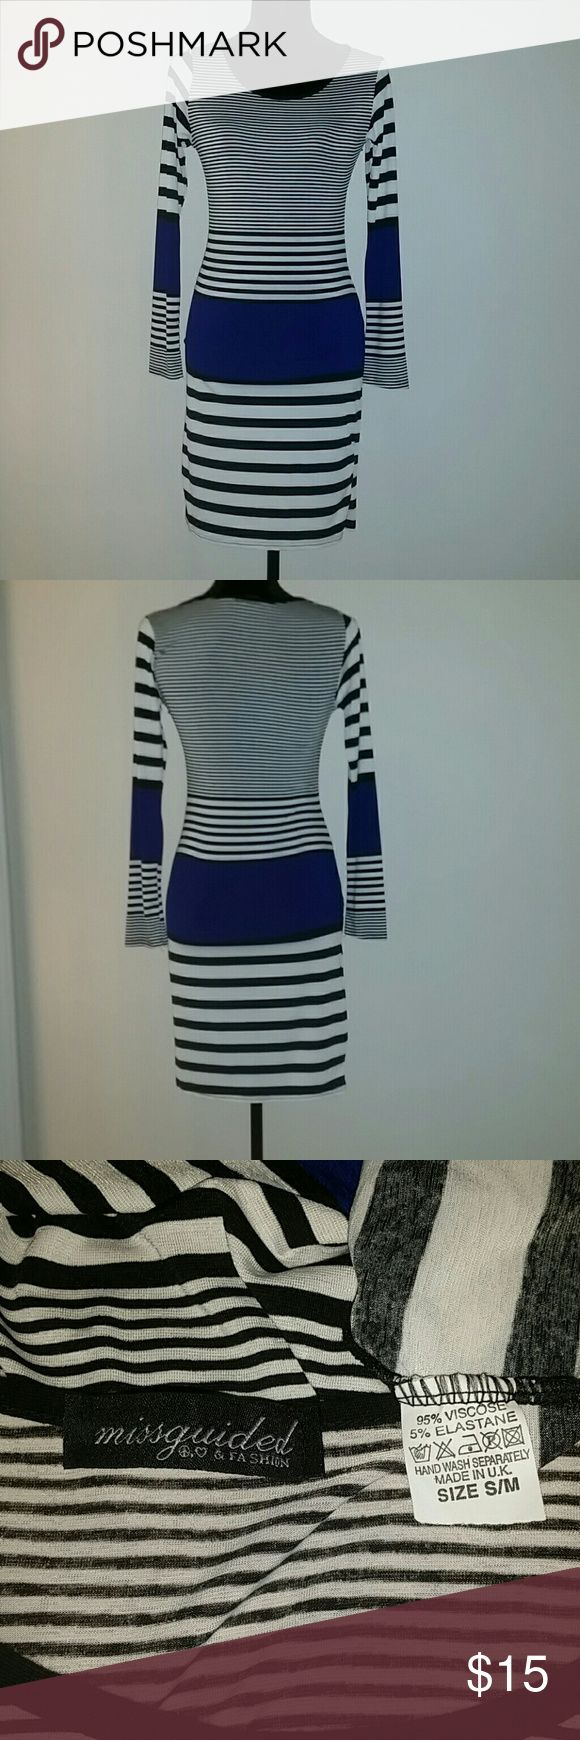 Black/White/Blue Bodycon Dress A Missguided original black and white striped Bodycon dress with navy blocks. Missguided Dresses